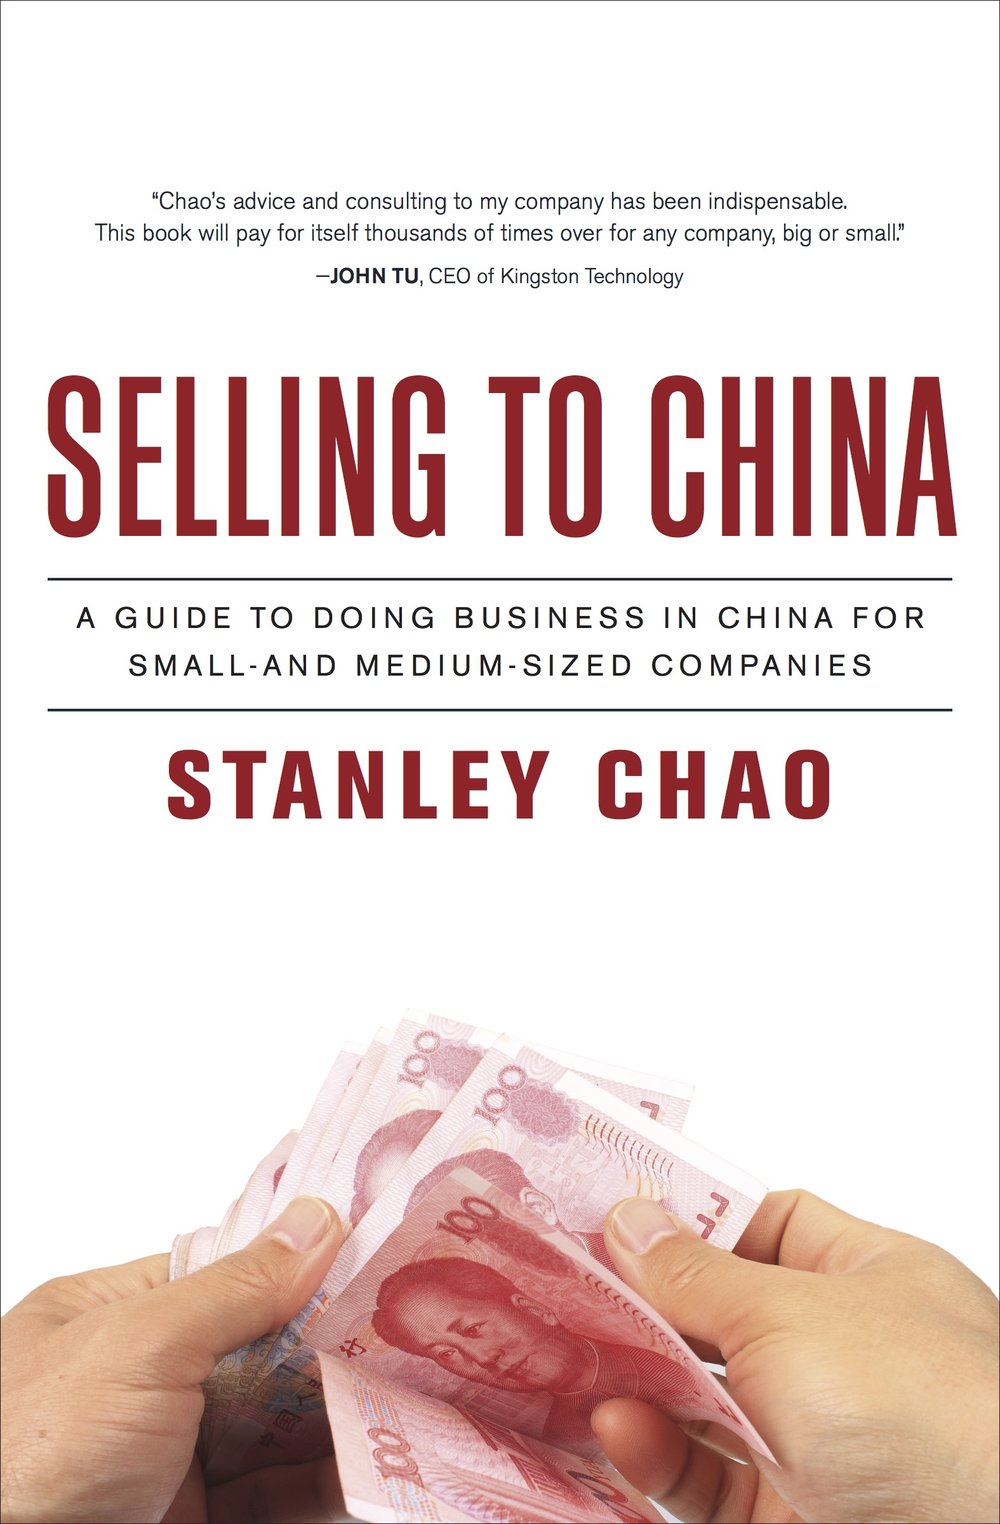 Chao_Selling to China.jpg